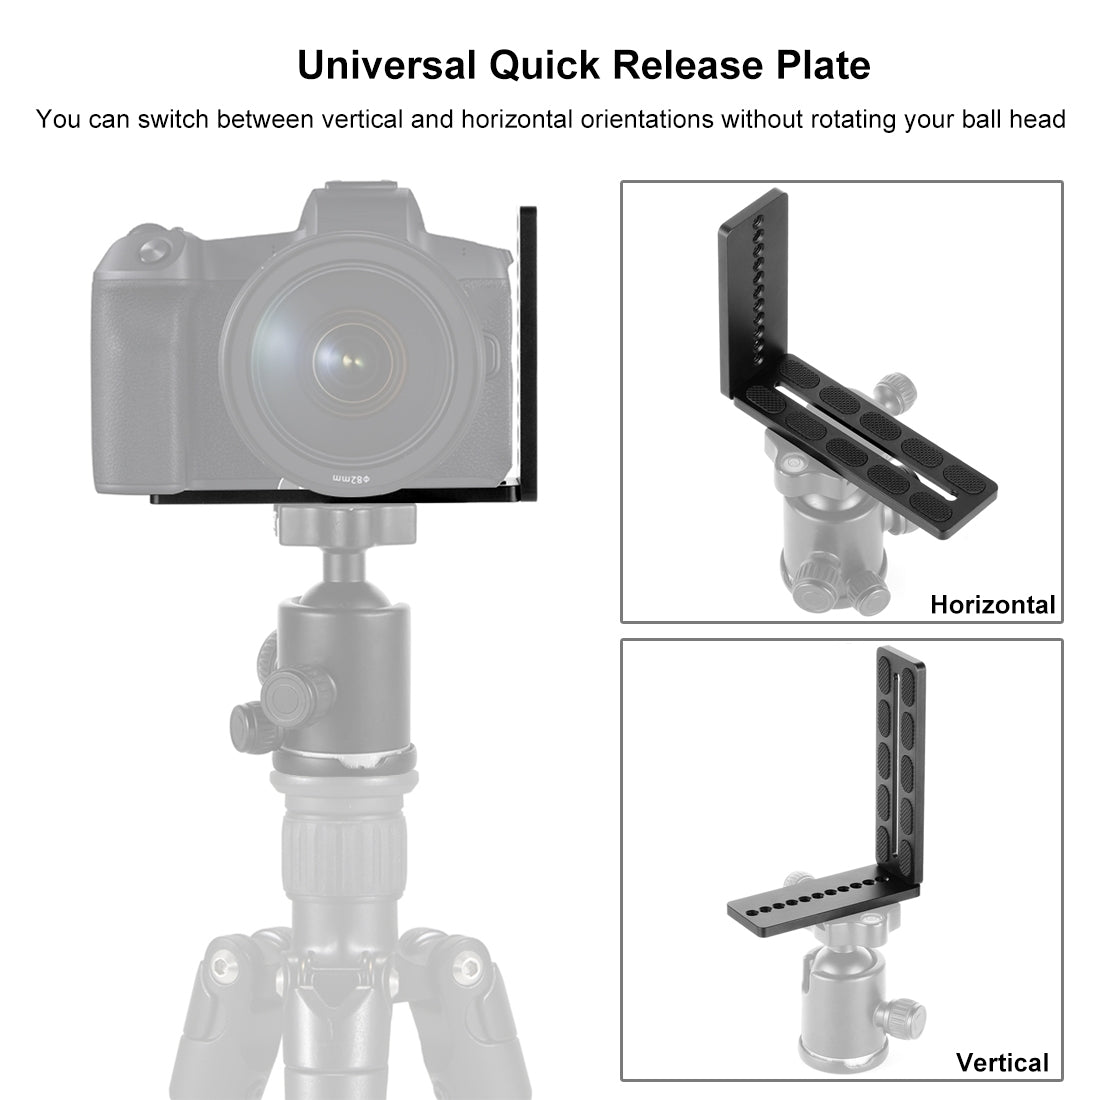 1/4 inch Vertical Shoot Quick Release L Plate Bracket Base Holder for MOZA / DJI / Zhiyun / Nebula  3-Axis Stabilizer (Black)